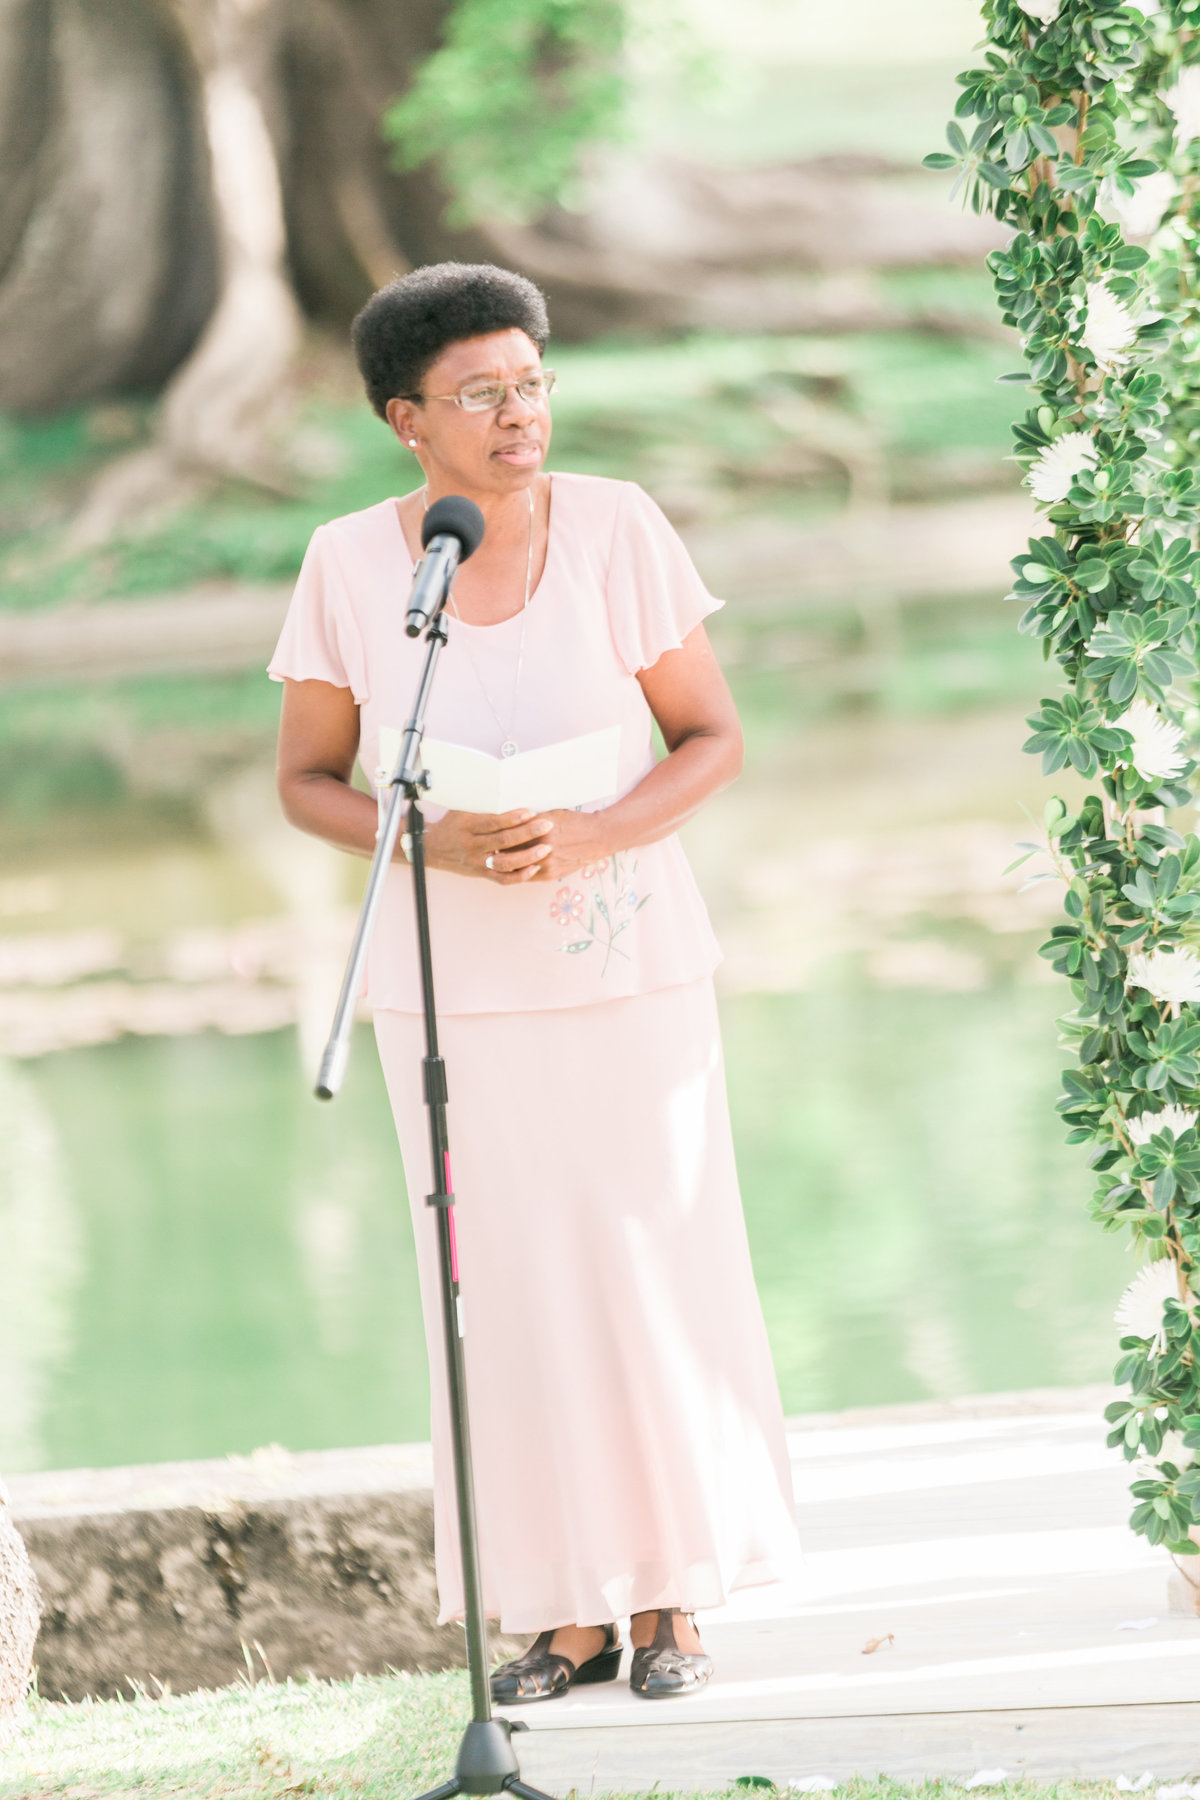 Reading at wedding ceremony, Barbados destination wedding